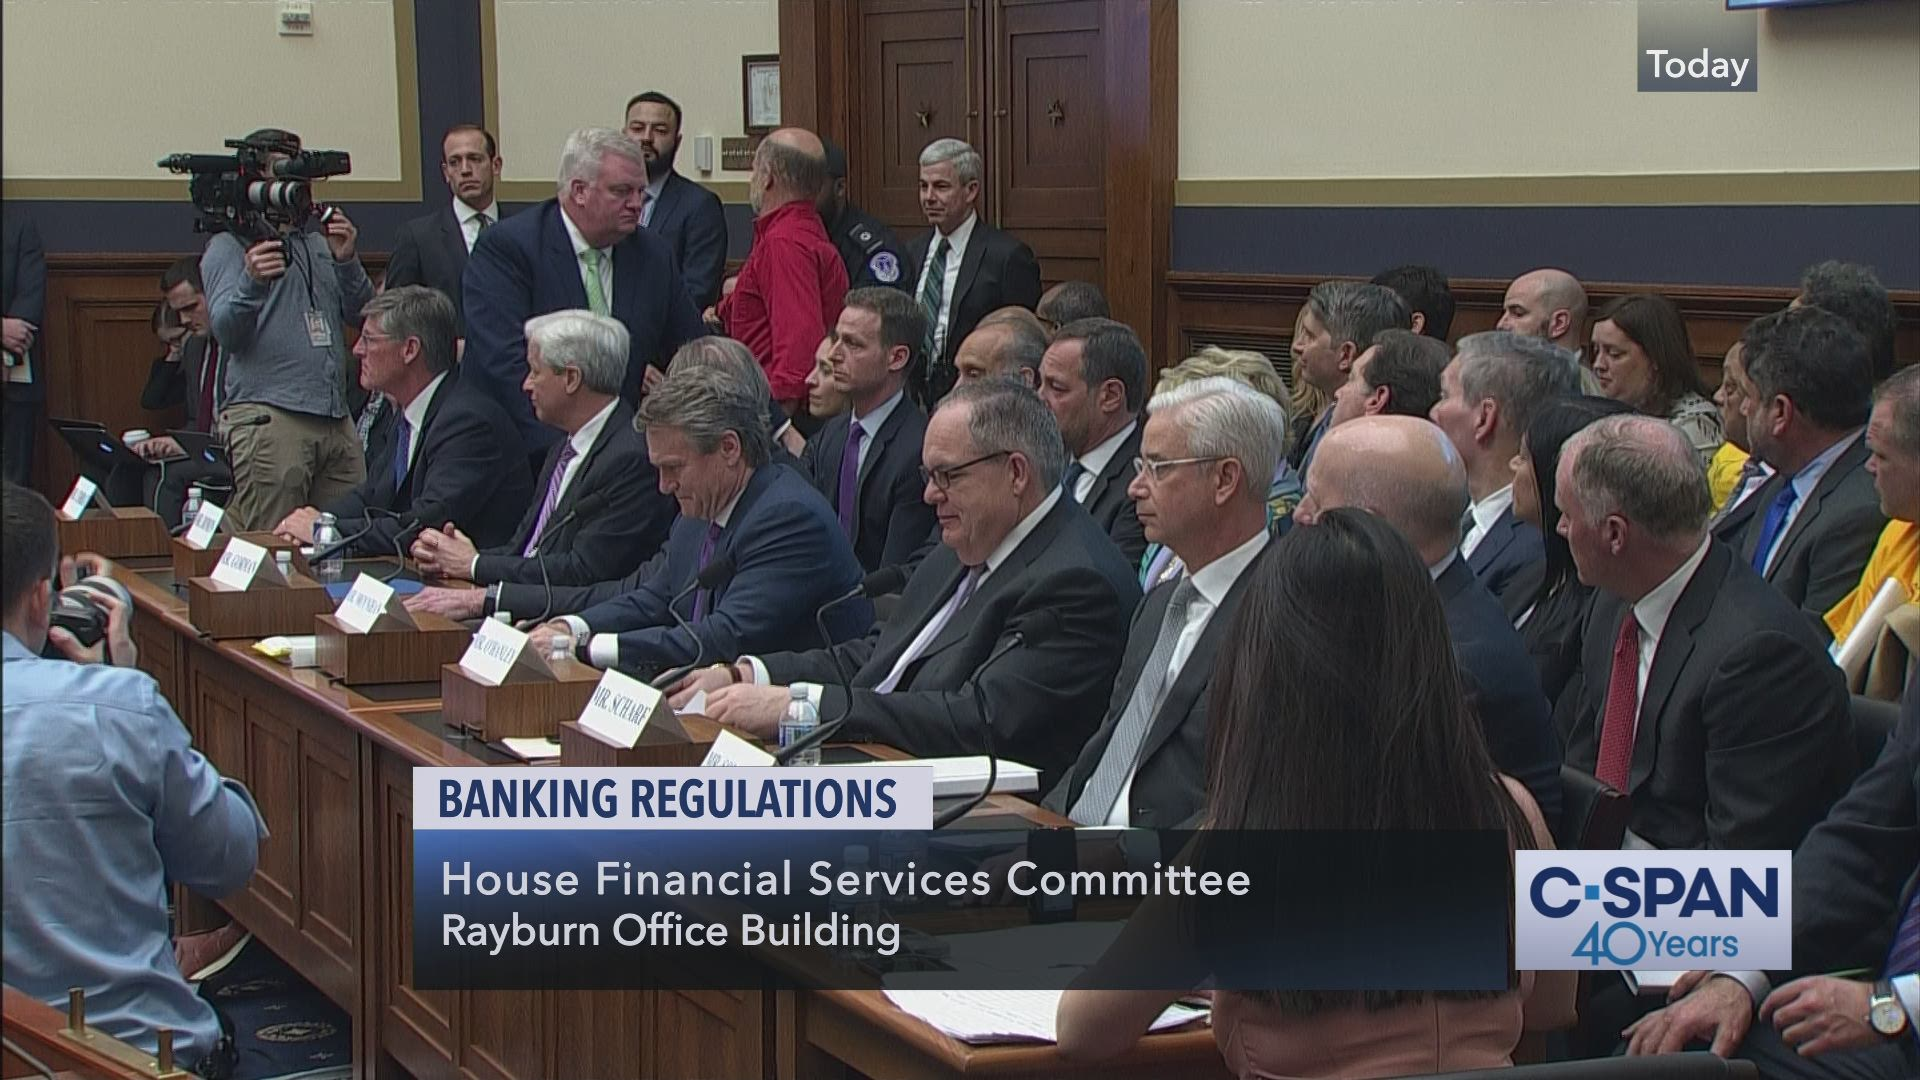 House Financial Services Committee Hearing on Banking Regulations